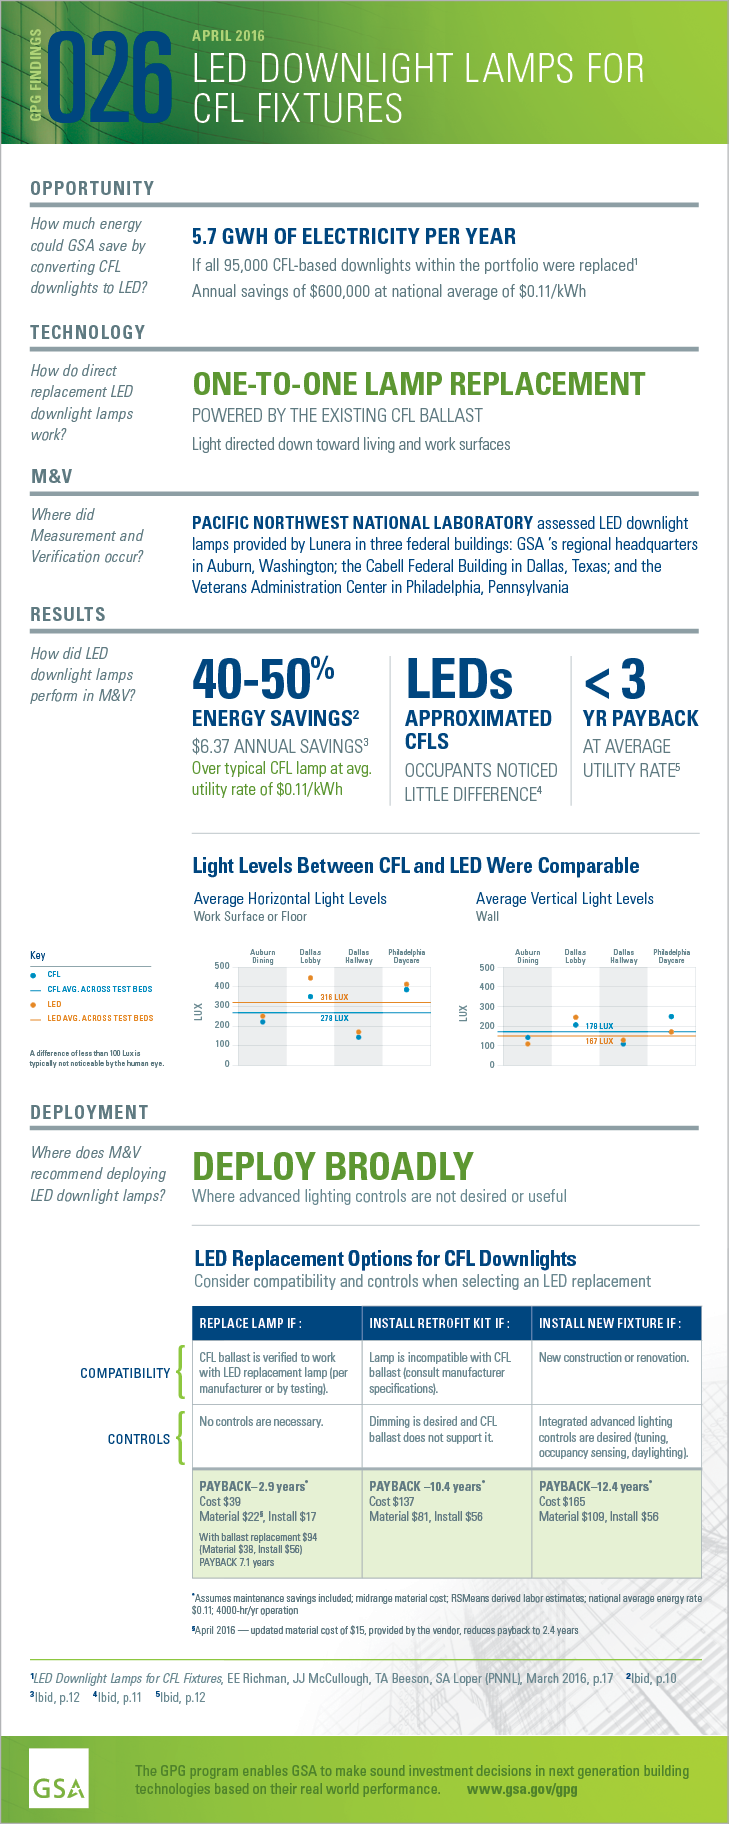 GPG Findings 024, August 2015, LED Fixtures with Integrated Advanced Lighting Controls. Opportunity:How much energycould GSA save by converting CFL downlights to LED? 5.7 GWH OF ELECTRICITY PER YEAR. If all 95,000 CFL-based downlights within the portfolio were replaced. Annual savings of $600,000 at national average of $0.11/kW. Technology: How do directreplacement LED downlight lamps work? ONE-TO-ONE LAMP REPLACEMENT. POWERED BY THE EXISTING CFL BALLAST. Light directed down toward living and work surfaces. Measurement and Verification. Where did M and V occur? PACIFIC NORTHWEST NATIONAL LABORATORY assessed LED downlight lamps in three federal buildings: GSA 's regional headquarters in Auburn,Washington; the Cabell Federal Building in Dallas, Texas; and the Veterans Administration Center in Philadelphia, Pennsylvania. Results: How did LED downlight lamps perform in M&V? 40-50% ENERGY SAVINGS. $6.37 ANNUAL SAVINGS Over typical CFL lamp at avg.utility rate of $0.11/kWh.LEDs APPROXIMATED CFLS OCCUPANTS NOTICED LITTLE DIFFERENCE.< 3 YR PAYBACK AT AVERAGE UTILITY RATE. Light Levels Between CFL and LED Were Comparable.Deployment: Where does M&V recommend deploying LED downlight lamps? DEPLOY BROADLY. Where advanced lighting controls are not desired or useful.LED Replacement Options for CFL DownlightsConsider compatibility and controls when selecting an LED replacement.REPLACE LAMP IF:CFL ballast is verified to workwith LED replacement lamp (per manufacturer or by testing). No controls are necessary. PAYBACK– 2.9 years*Cost $39. Material $22§, Install $17. With ballast replacement $94 (Material $38, Install $56. PAYBACK 7.1 years. INSTALL RETROFIT KIT IF :Lamp is incompatible with CFL ballast (consult manufacturer specifications).Dimming is desired and CFLballast does not support it.PAYBACK –10.4 years*. Cost $137. Material $81, Install $56.INSTALL NEW FIXTURE IF : New construction or renovation.Integrated advanced lighting controls are desired (tuning, occupancy sensing, daylighting).PAYBACK–12.4 years. Cost $165. Material $109, Install $56.